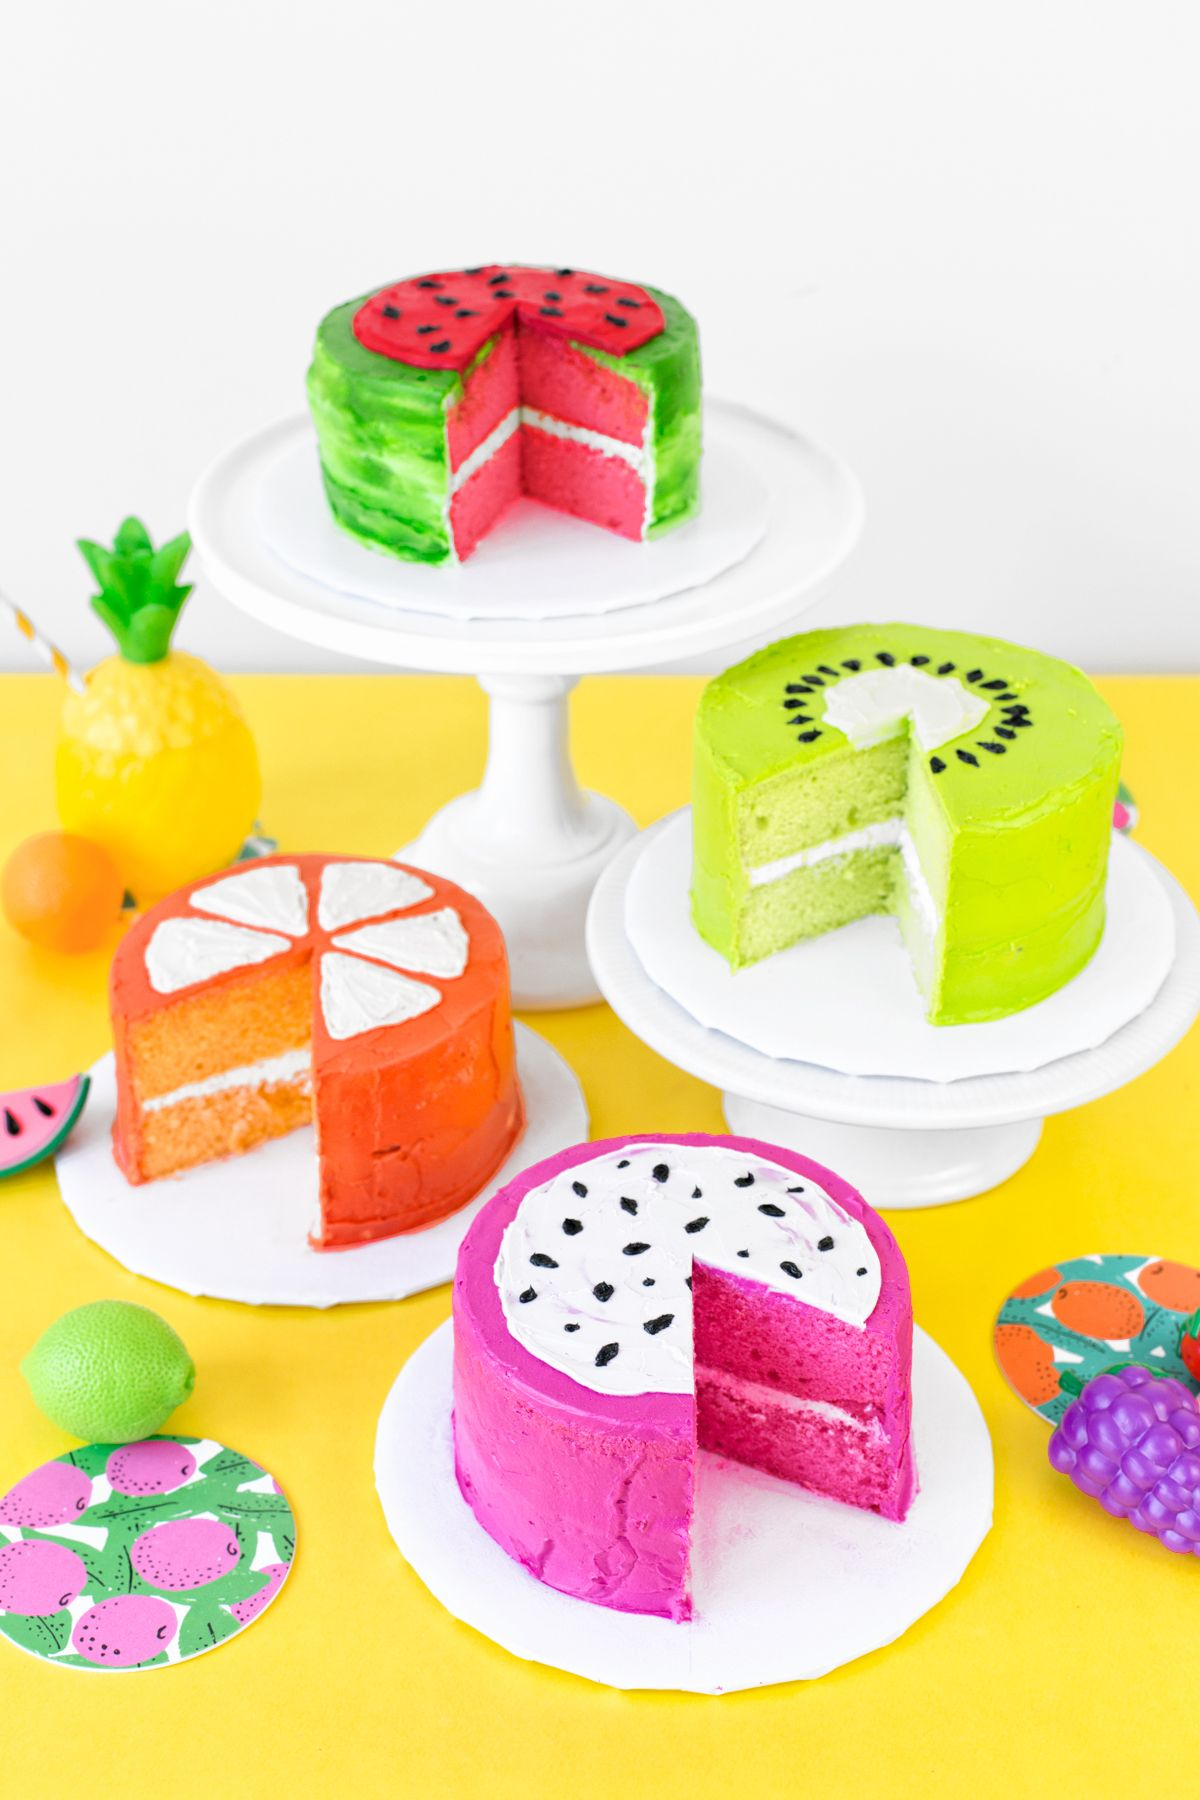 Fruit Slice Cakes                                                                                                                                                                                 More